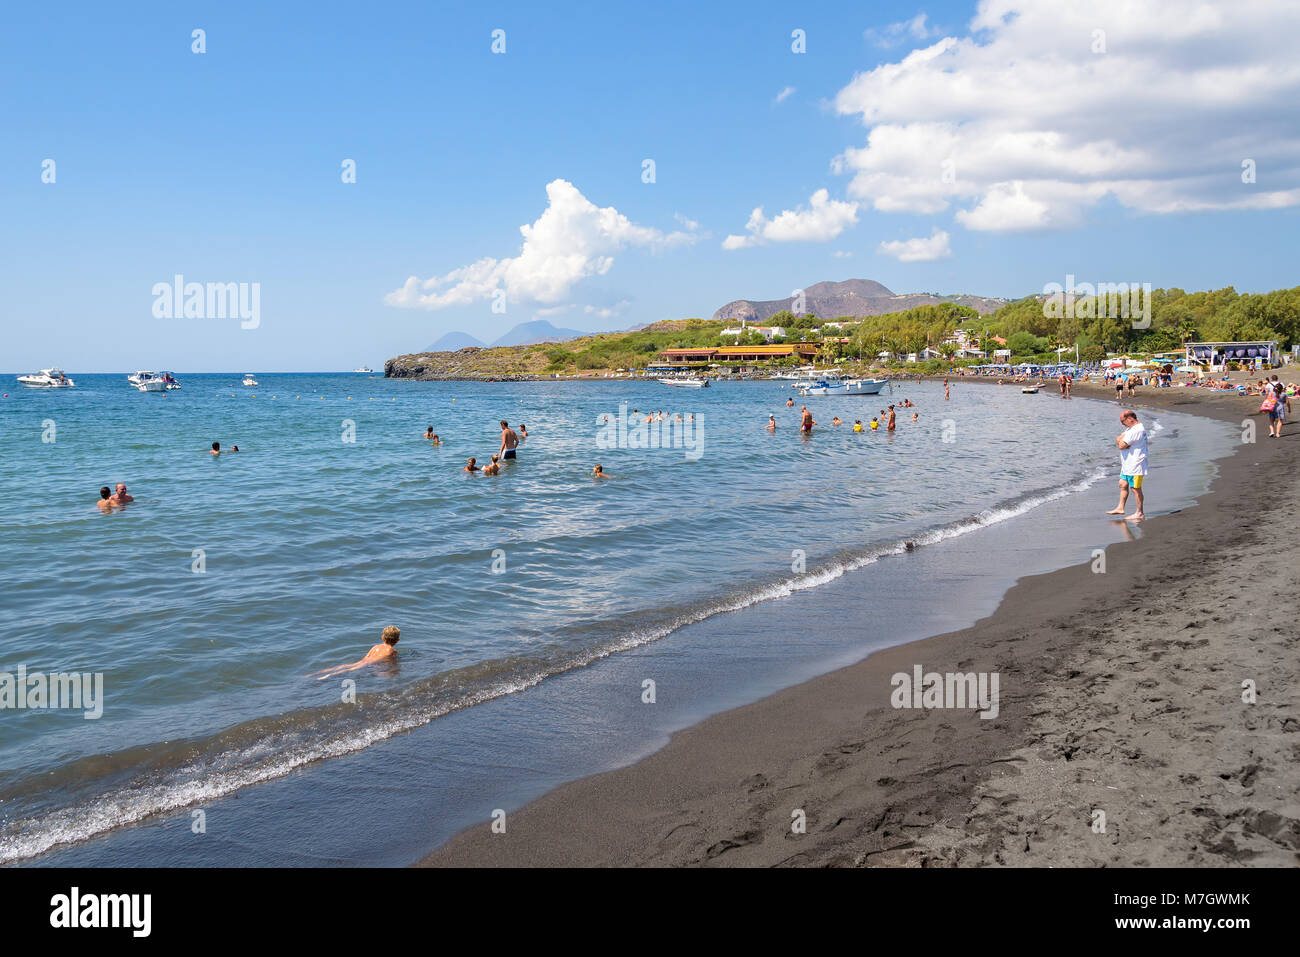 Vulcano Island, Italy - August 22, 2017: People relax on the black volcanic beach on Vulcano Island. Stock Photo